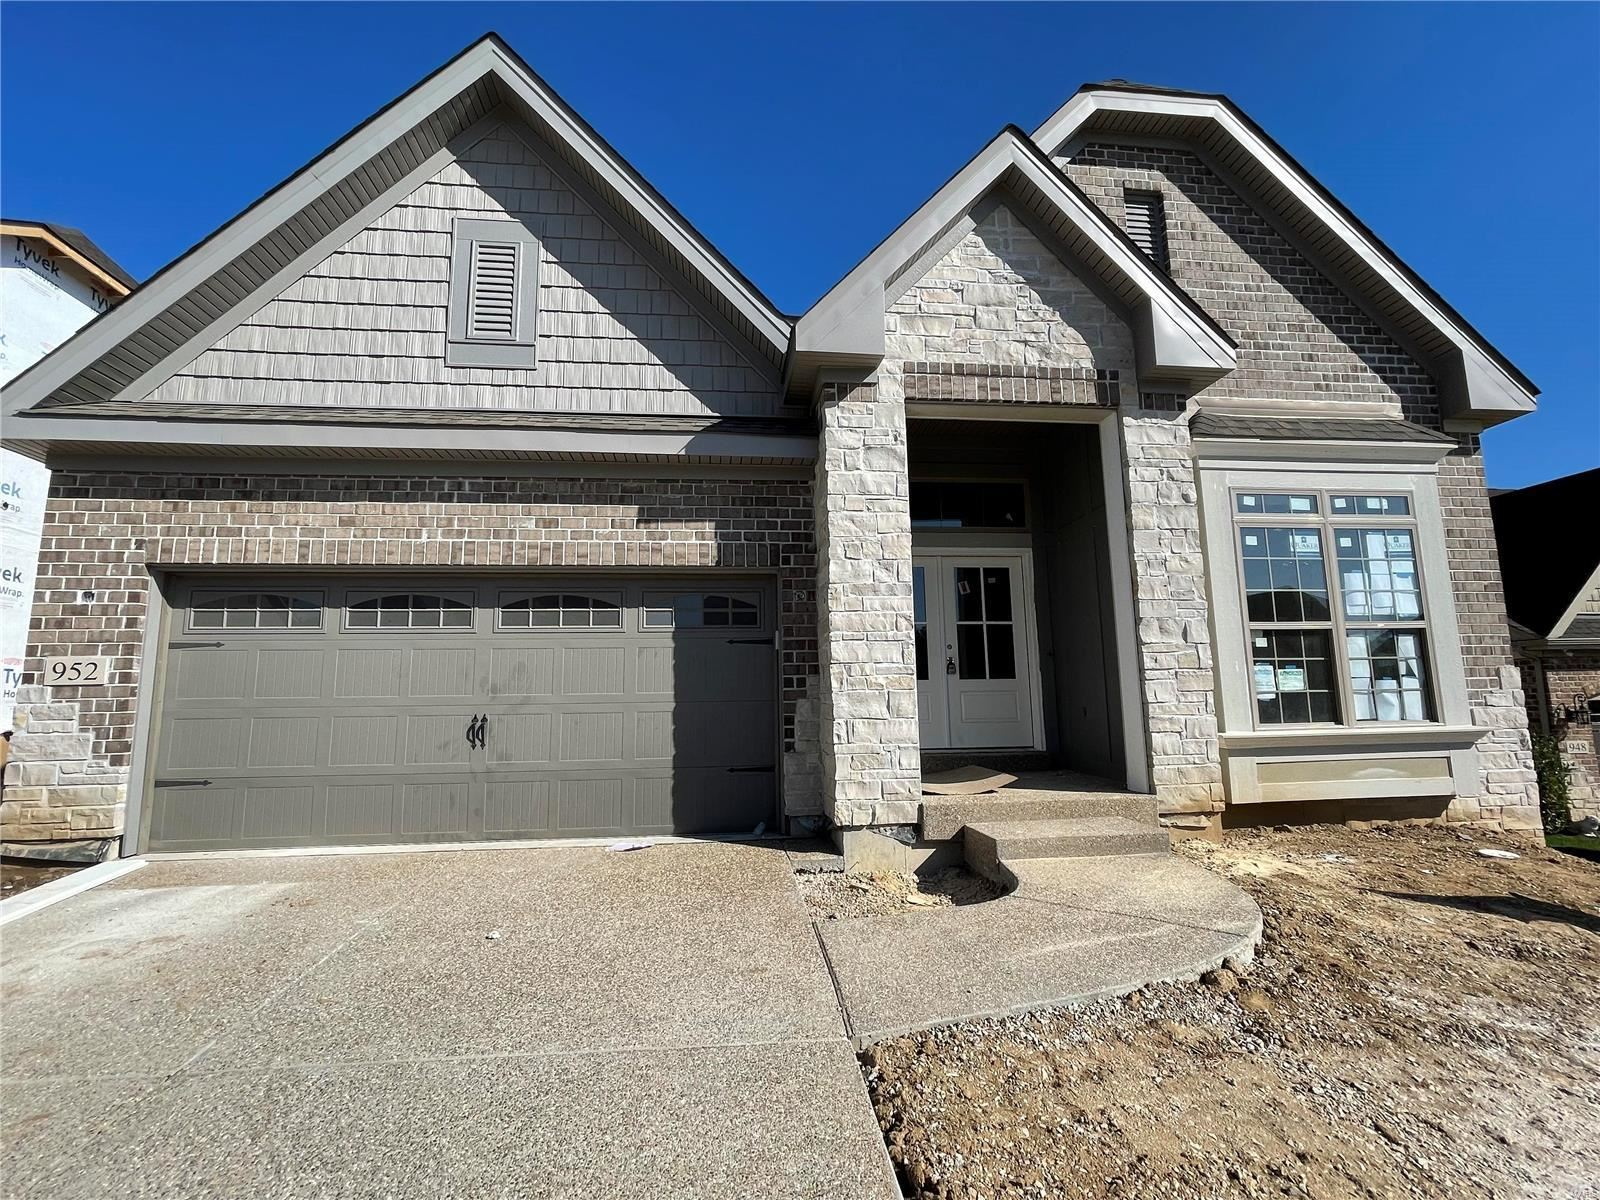 952 Grand Reserve (Lot 4), Chesterfield, MO 63017 - MLS#: 20068522